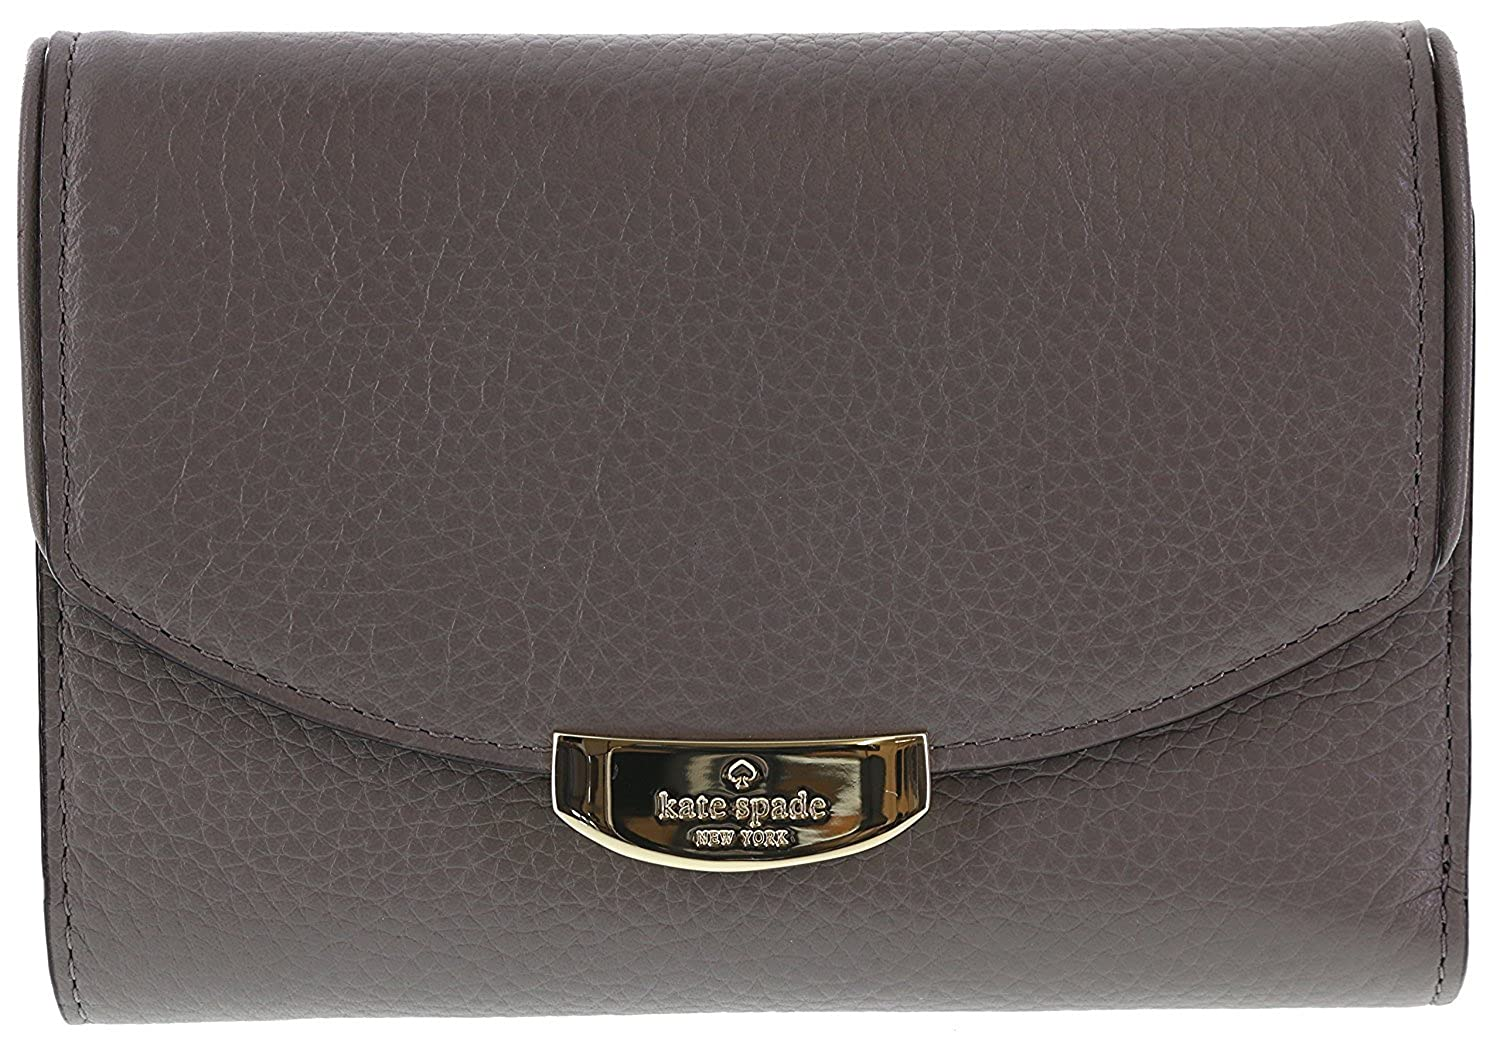 Kate Spade New York Mulberry Street Callie Pebbled Leather Wallet WLRU2605